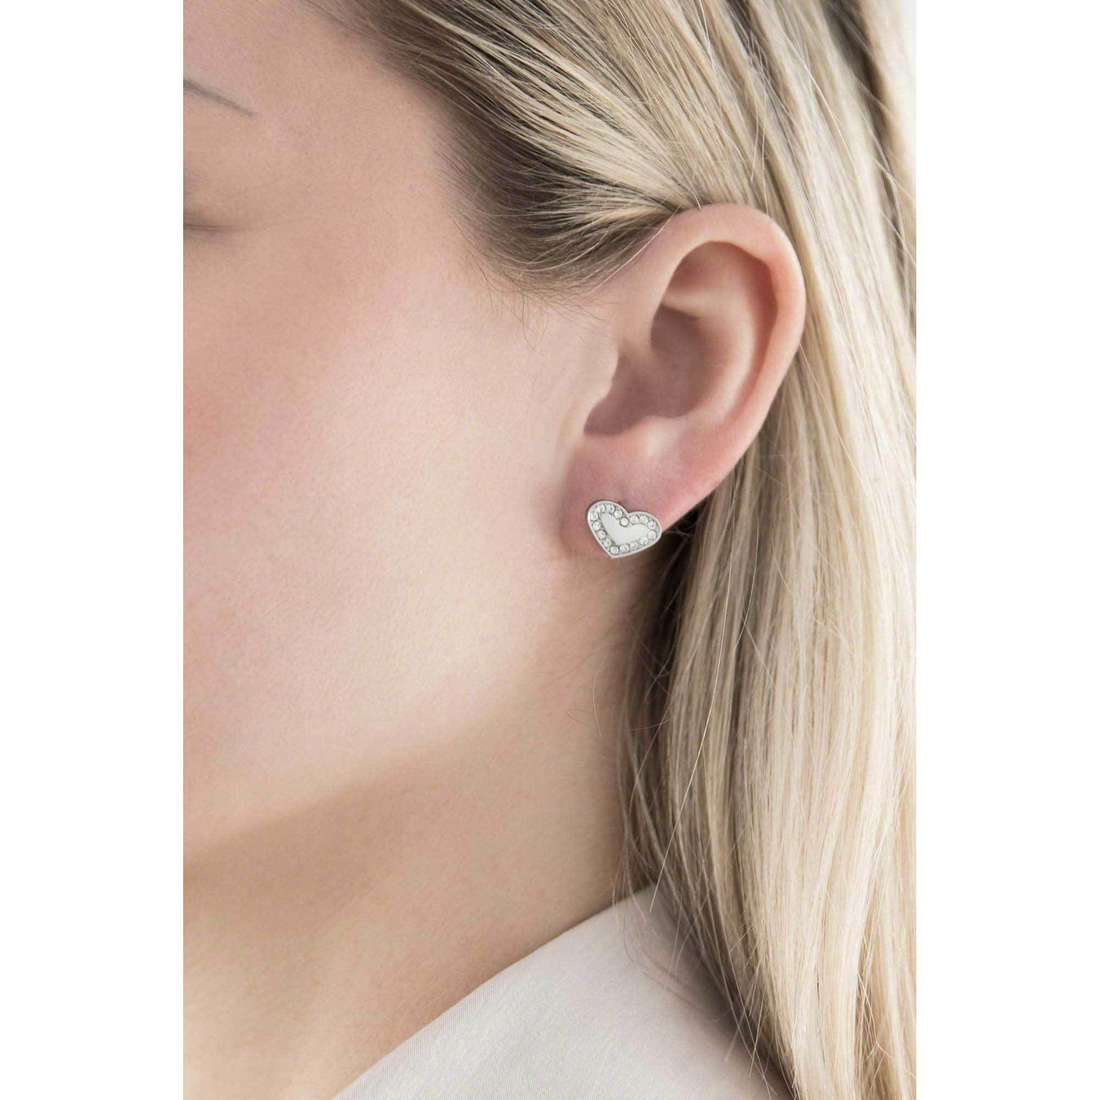 Morellato earrings Abbraccio woman SABG07 indosso